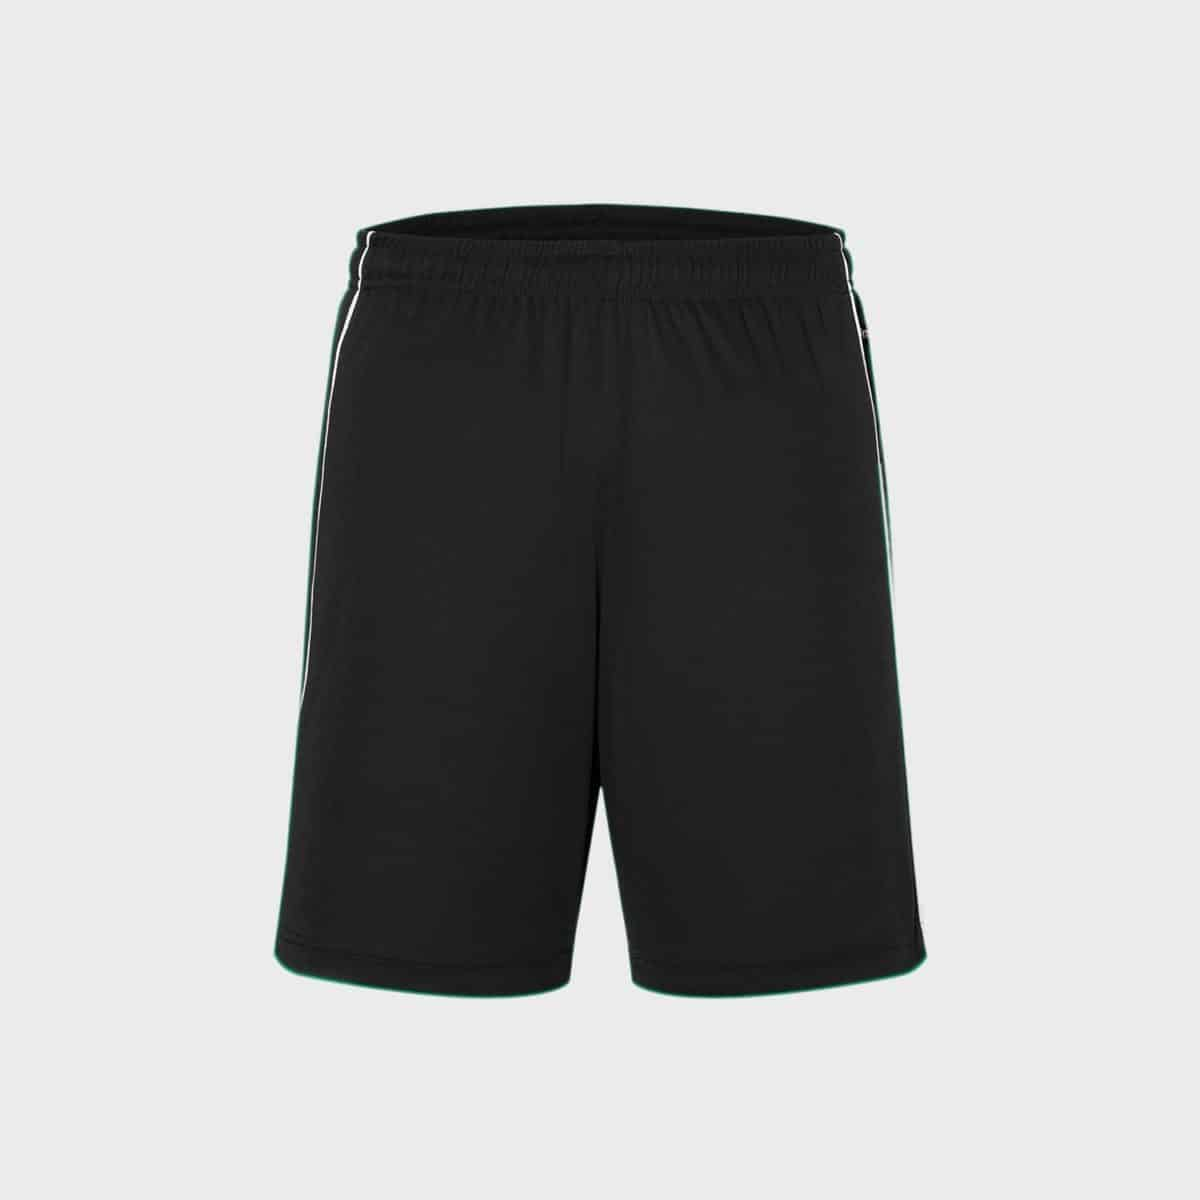 sporthosen-mannschafts-hosen-shorts-unisex-black-white-kaufen-besticken_StickManufaktur